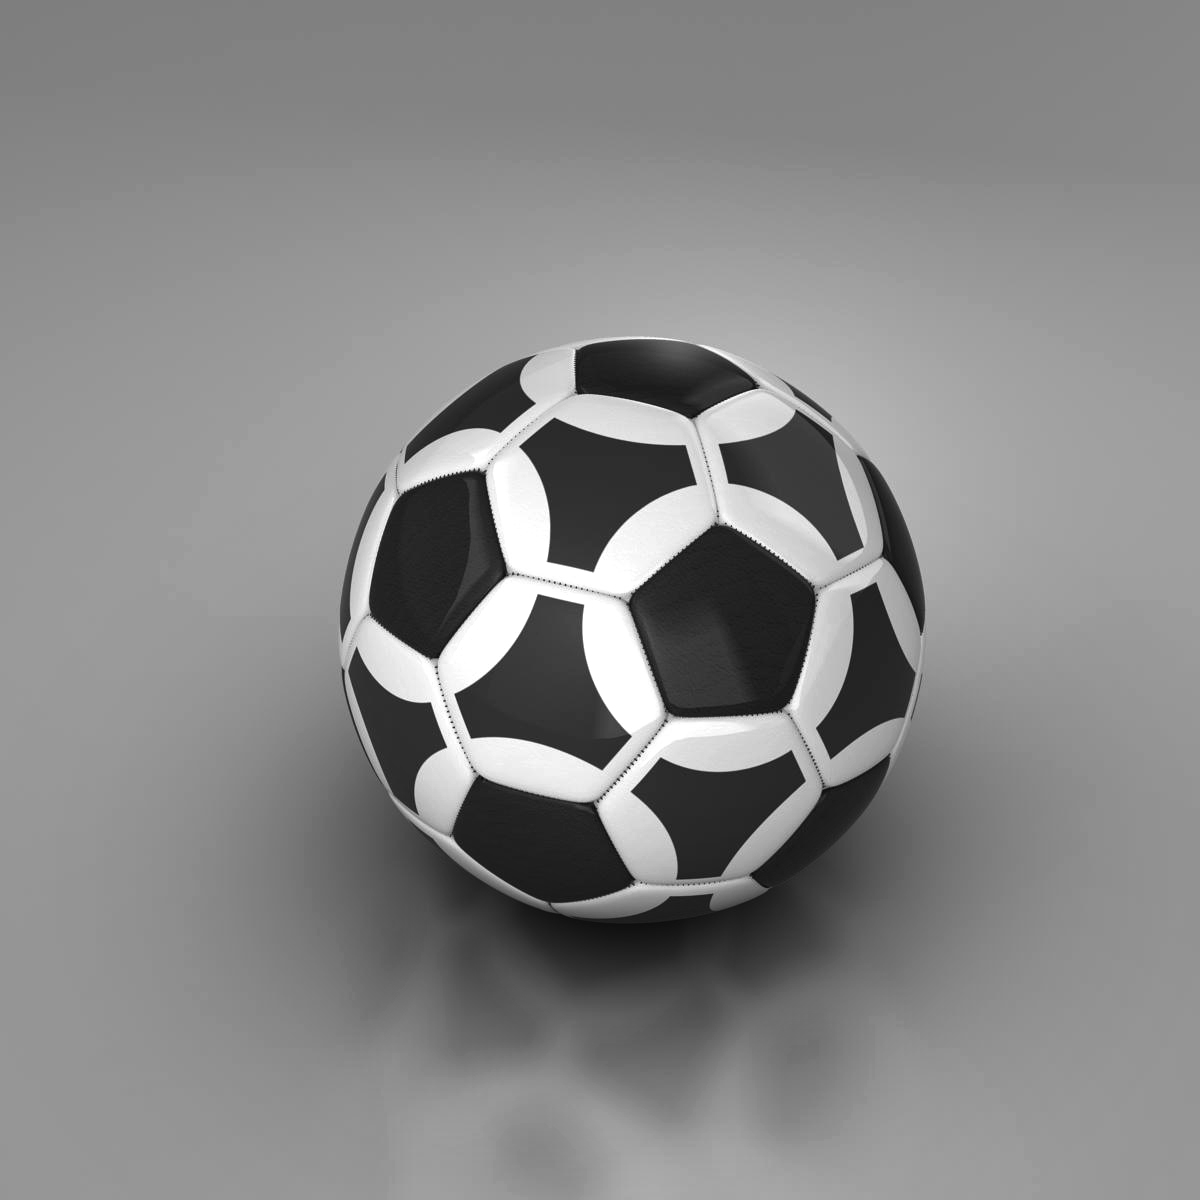 soccerball black white triangles 3d model 3ds max fbx c4d ma mb obj 204717